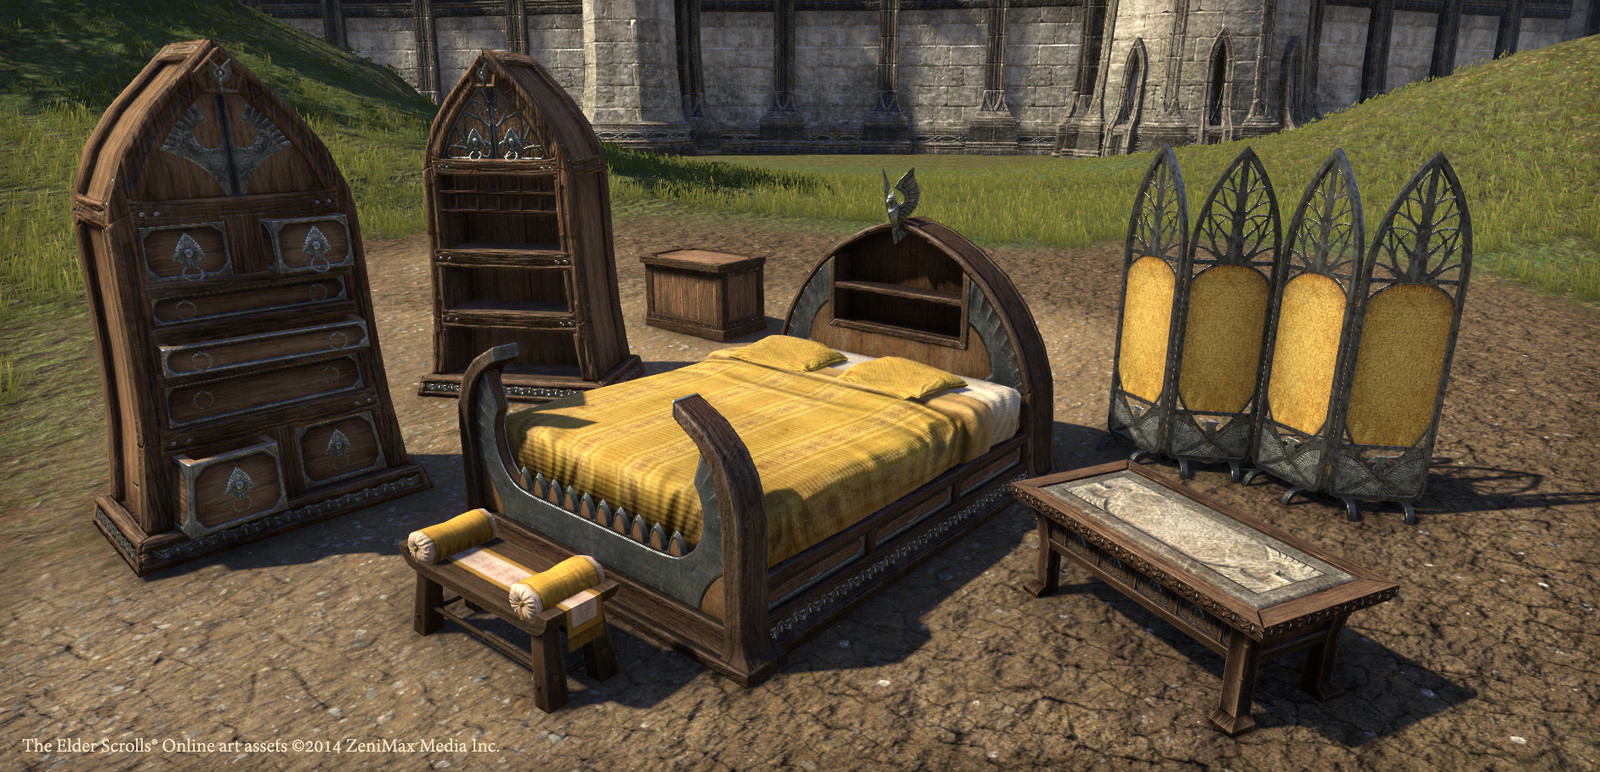 Altmer furniture. Ground texture and background by others.